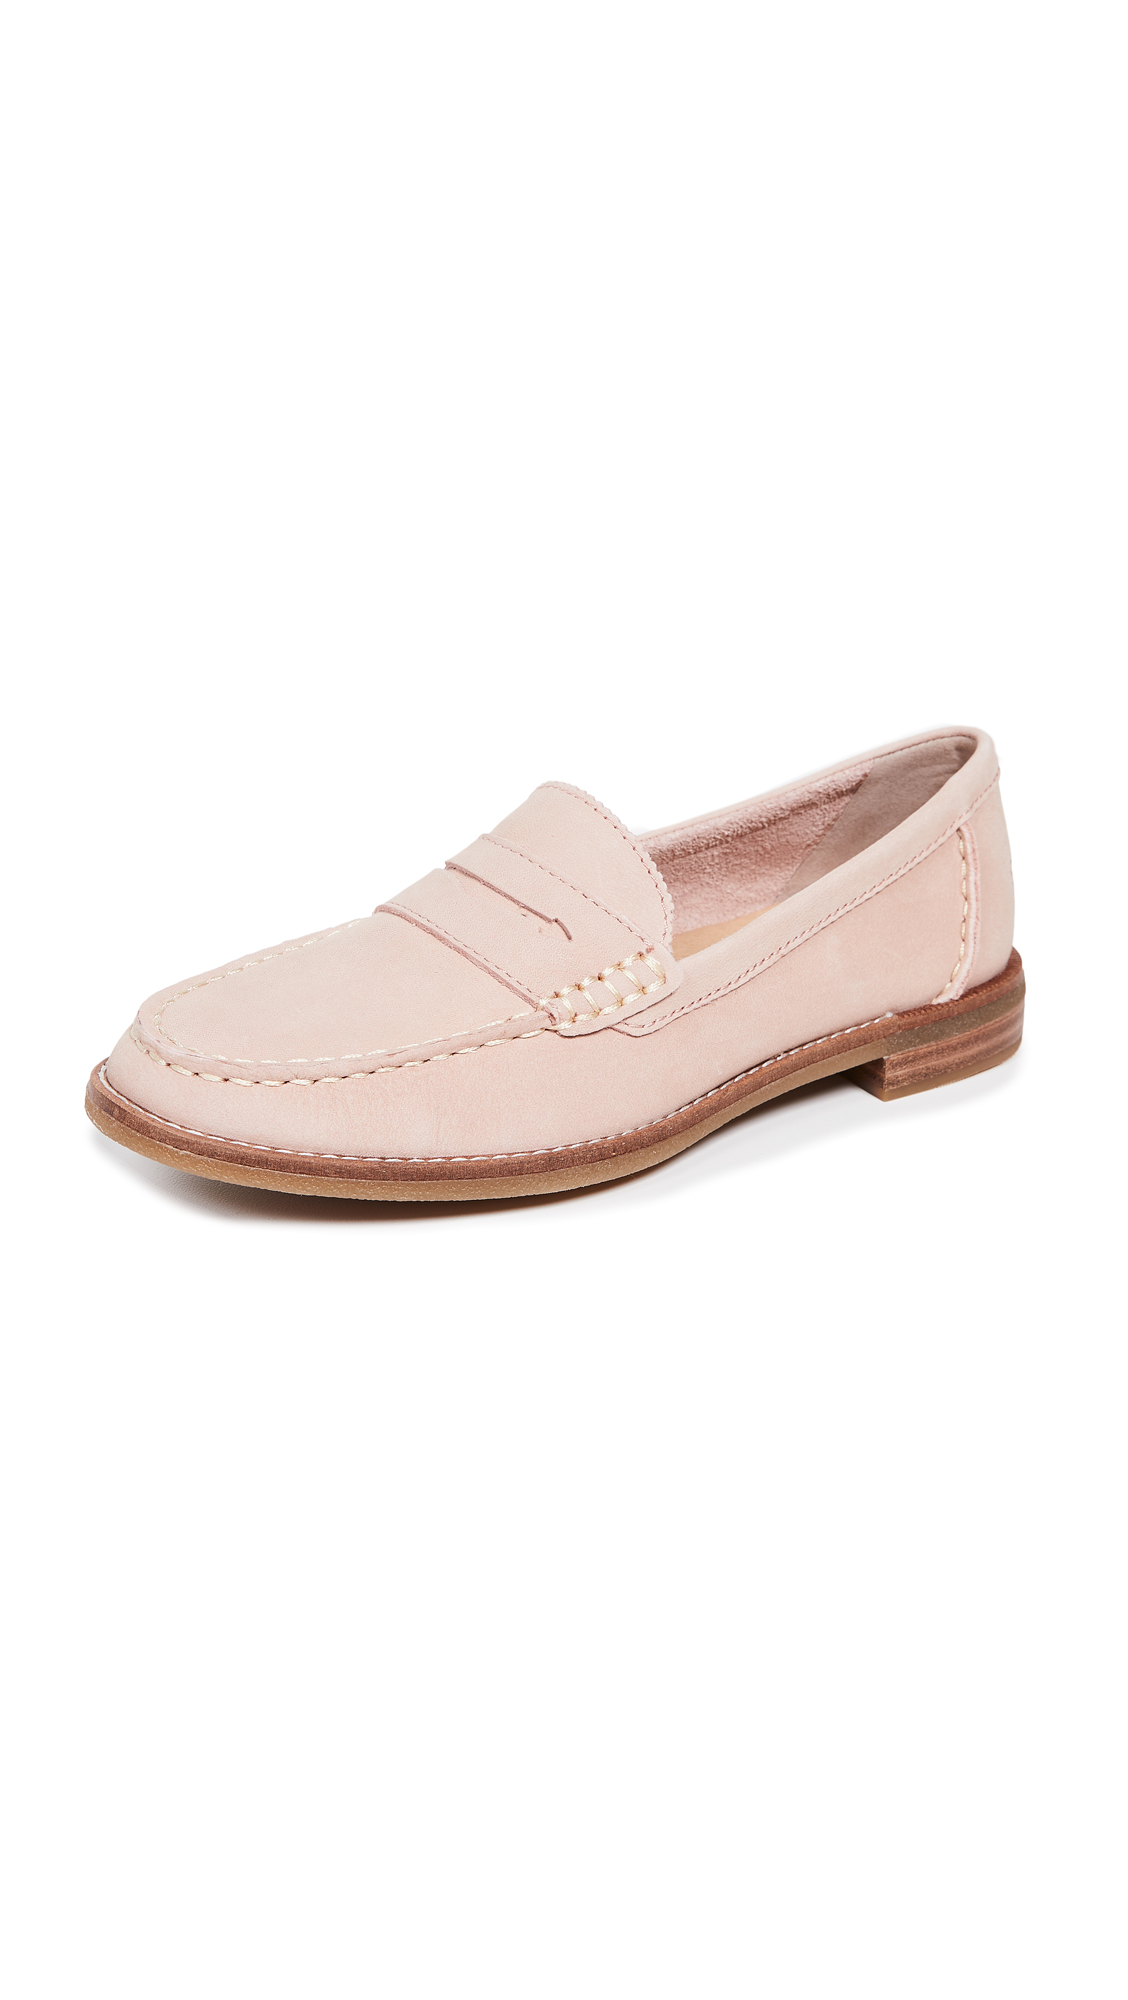 Sperry Seaport Penny Loafers - Rose Dust